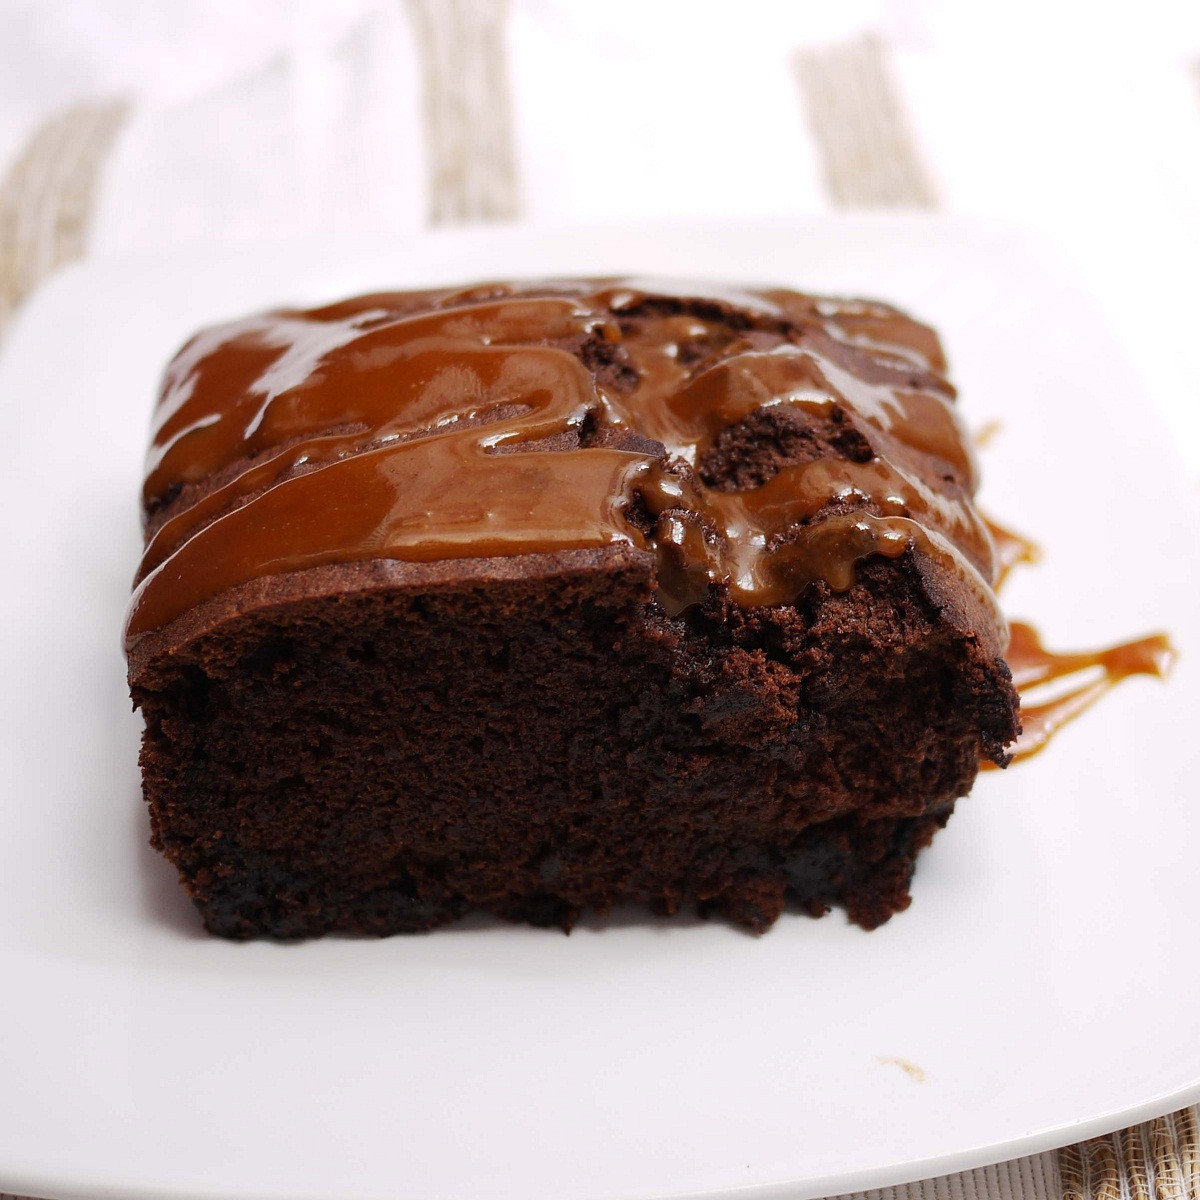 Chocolate Caramel Cake  Caramel Drenched Chocolate Loaf